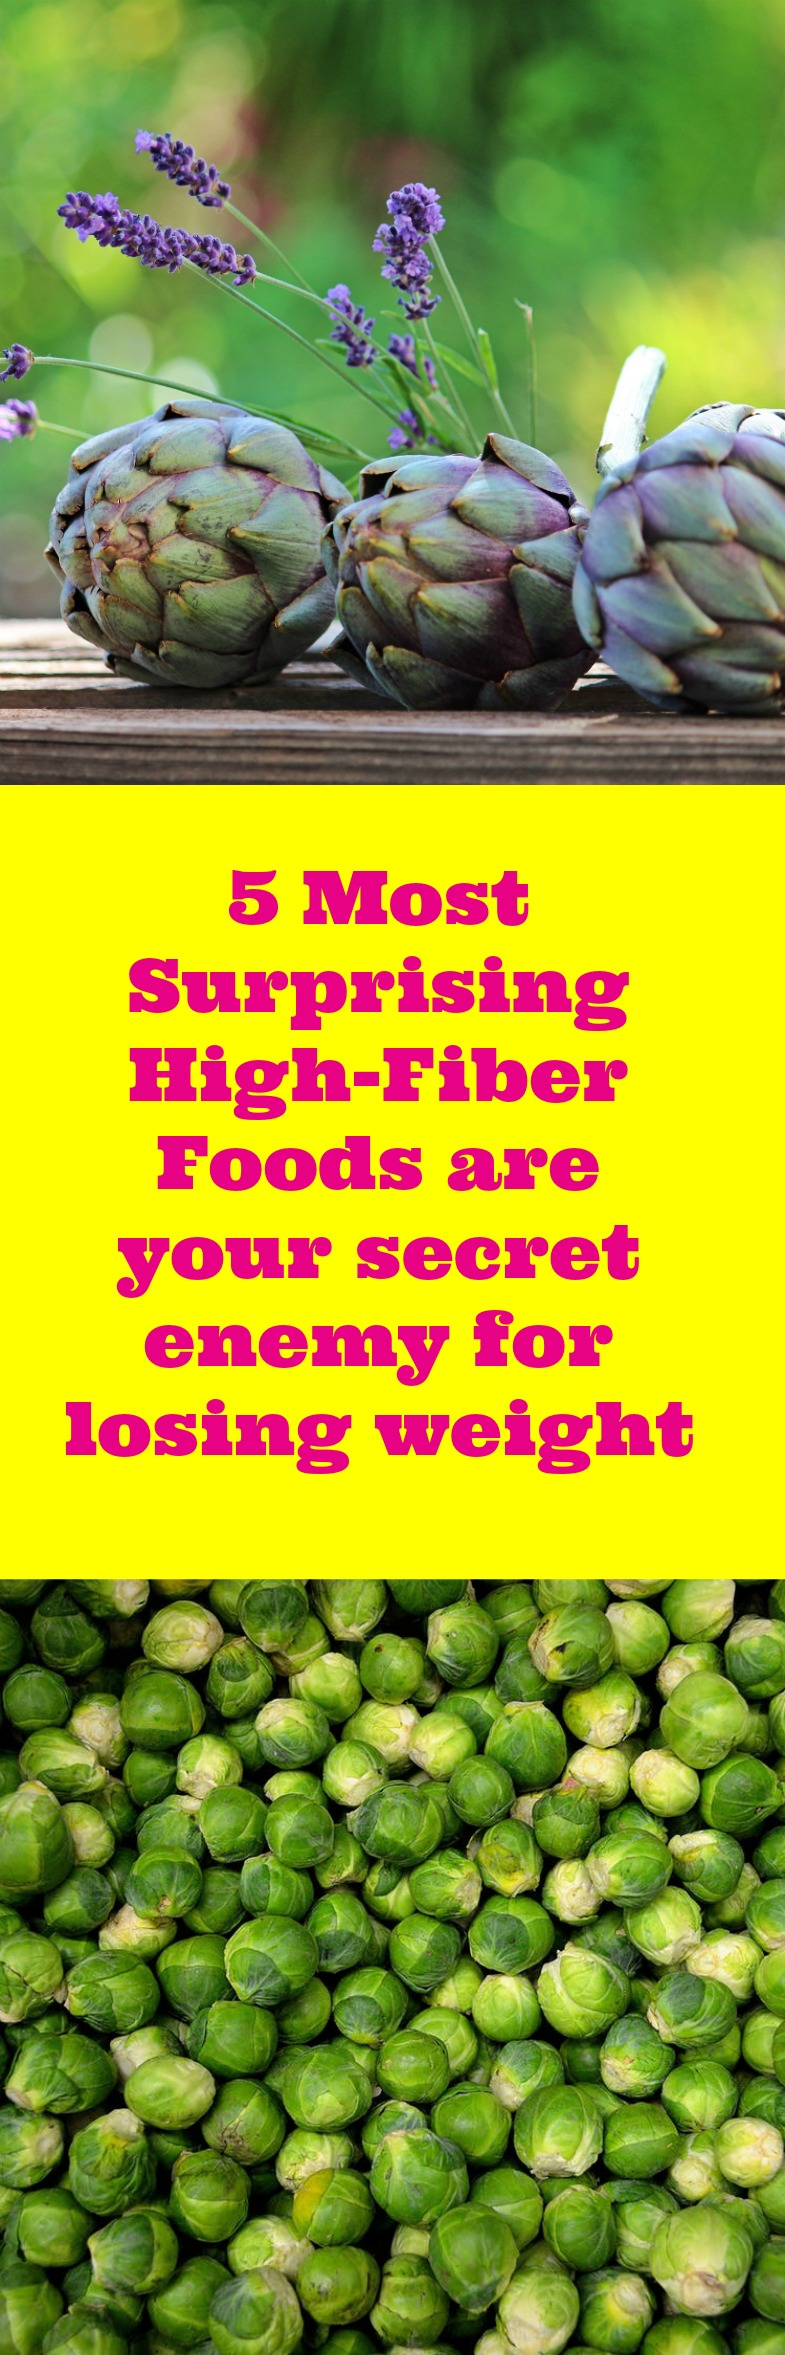 High Fiber foods for weight loss and to fight constipation.Adding into meals aids in better digestion.